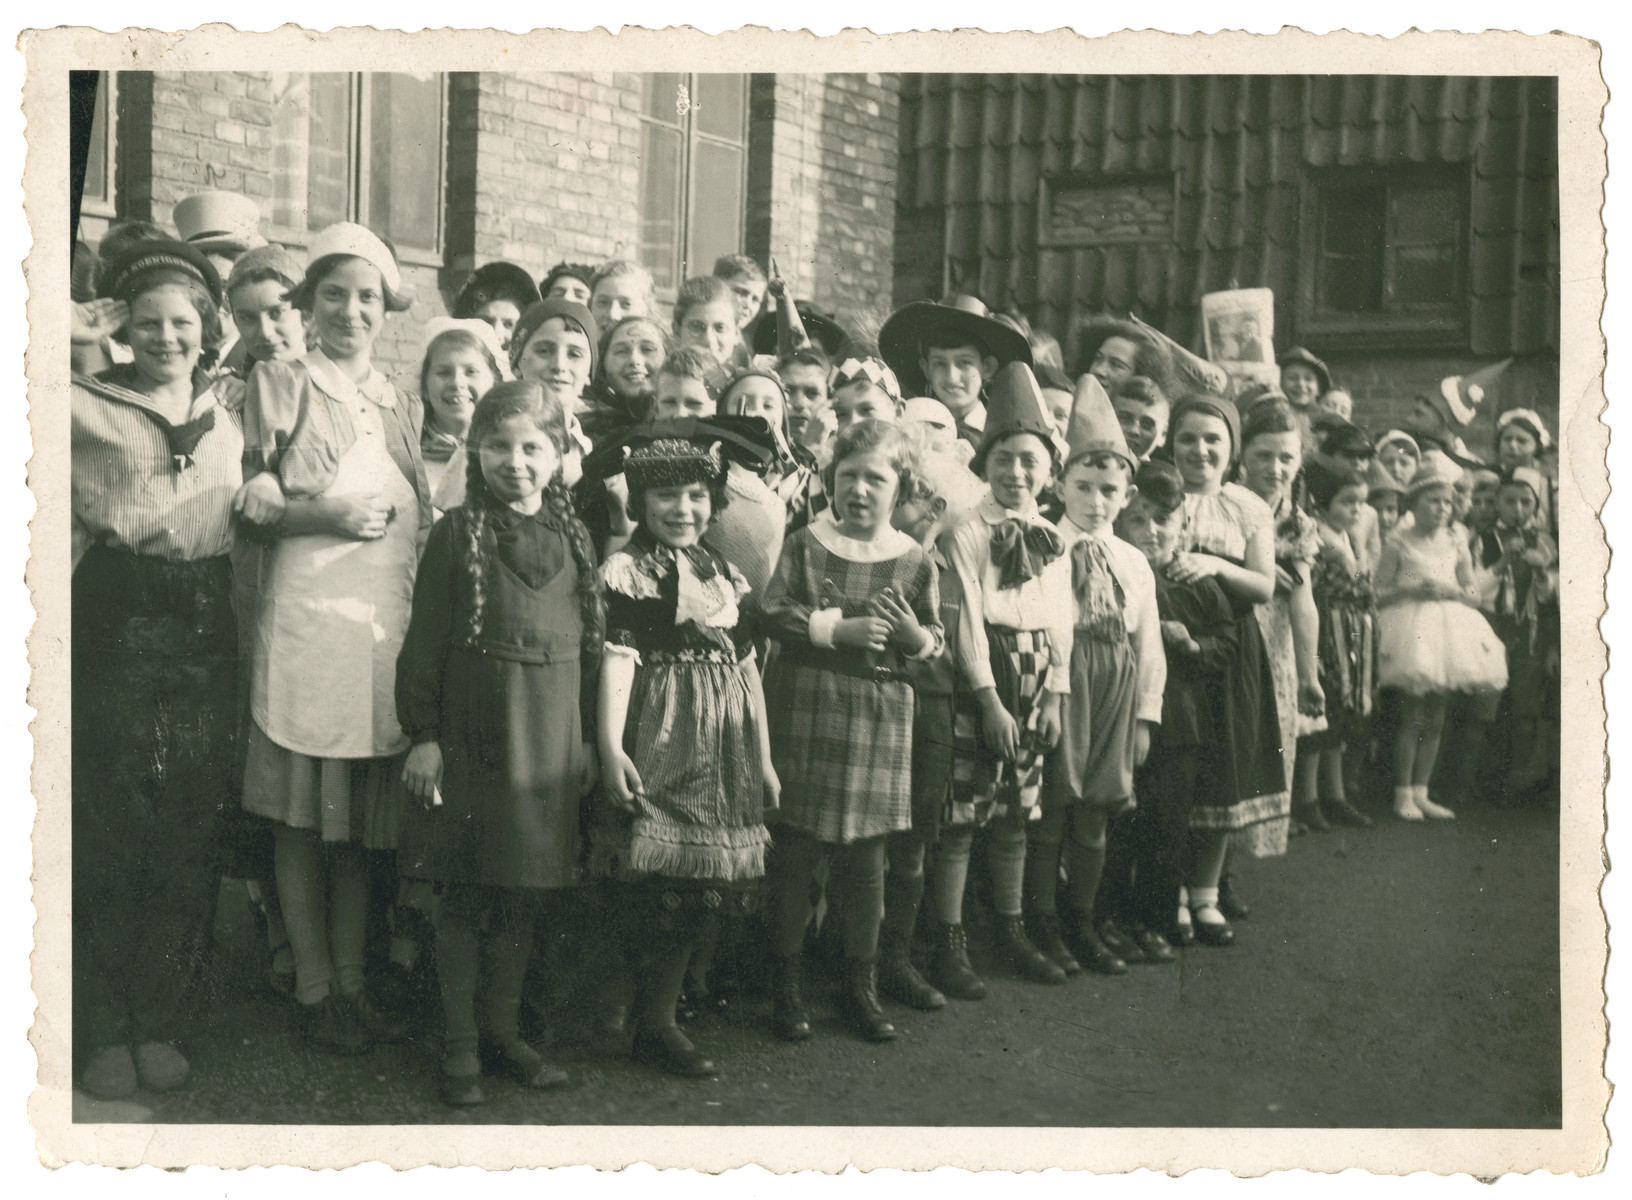 Possibly the class of Doris Edelman (nee Tager) celebrating the Jewish holiday of Purim in Germany.